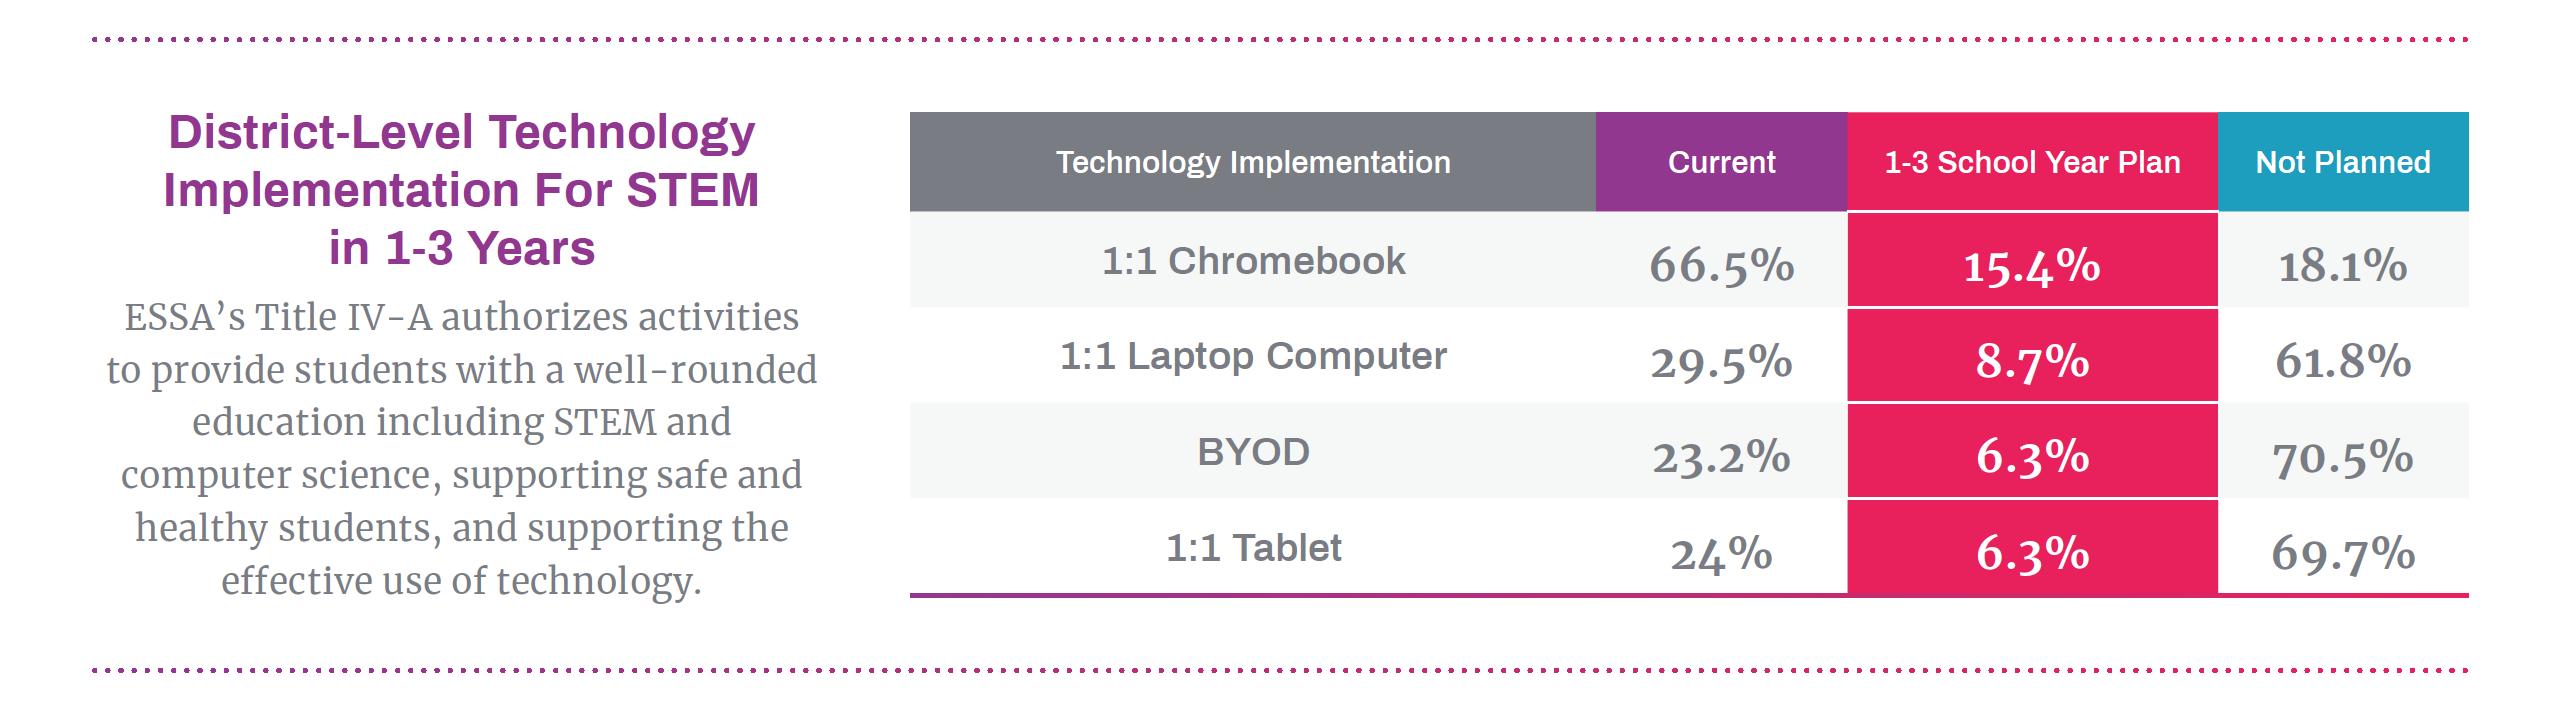 Chromebook Leads in Education